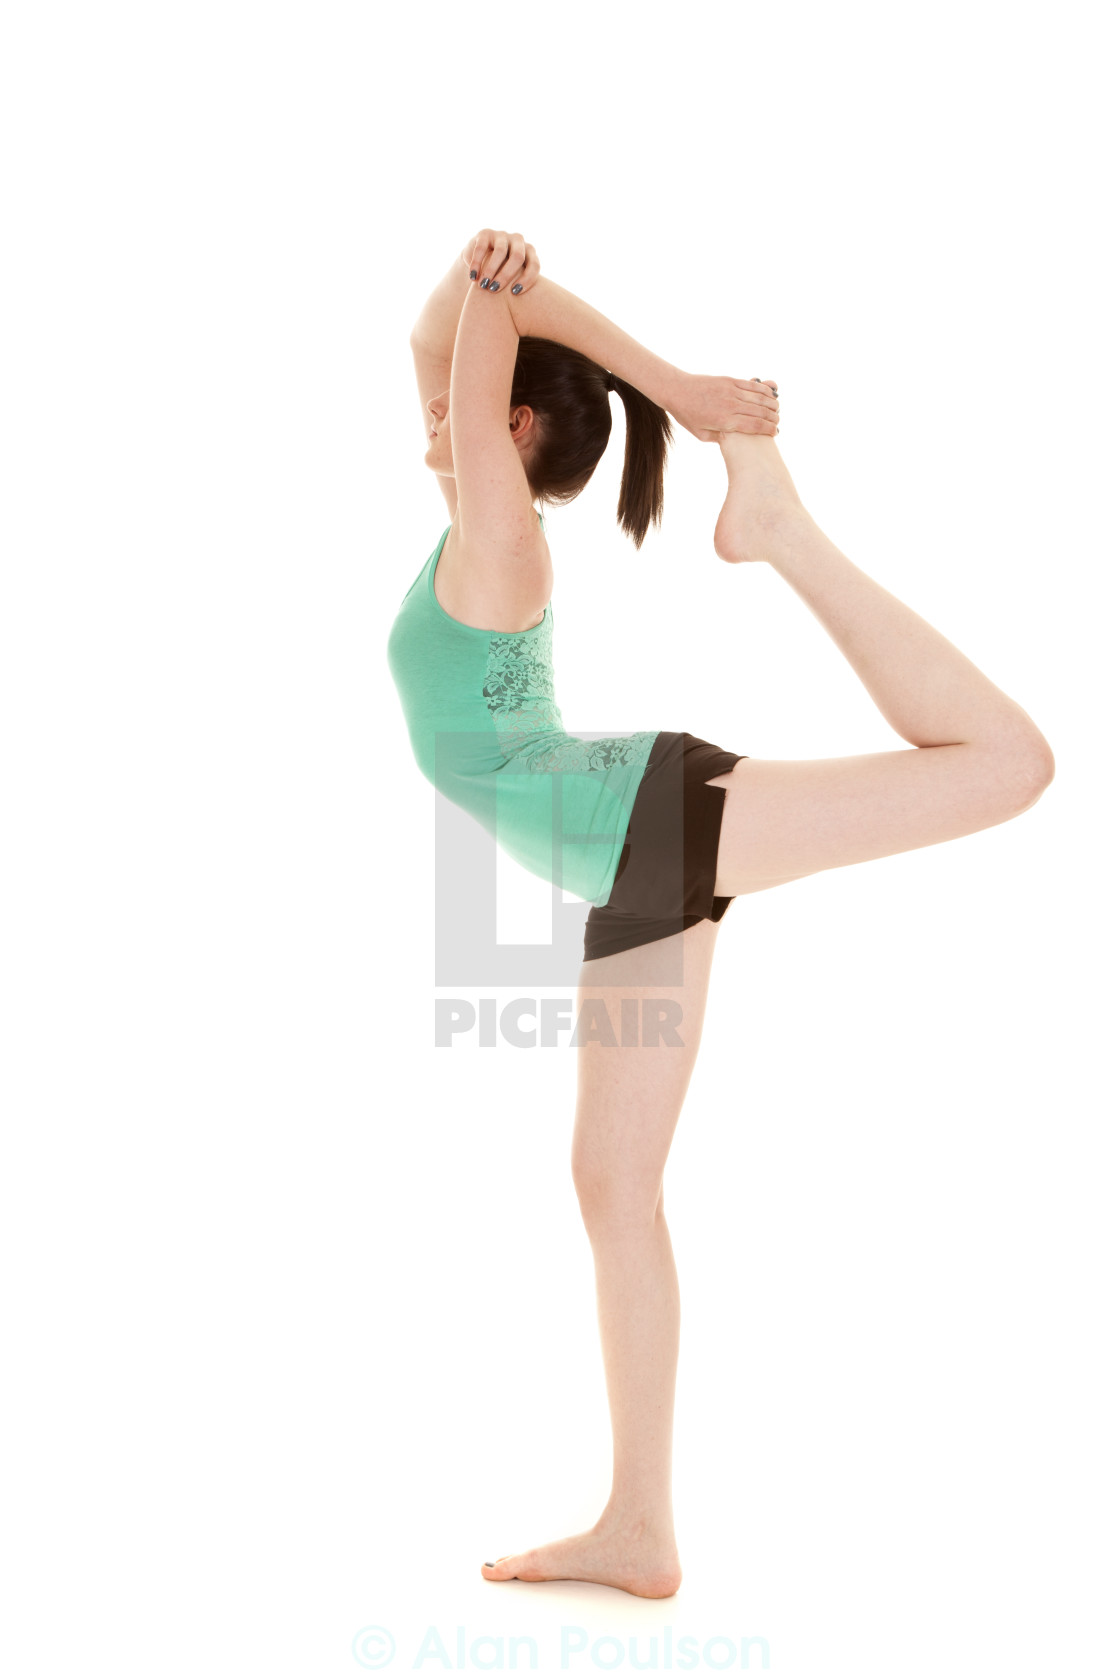 246f447a4d4a7 woman scorpion pose - License, download or print for £14.88 | Photos ...